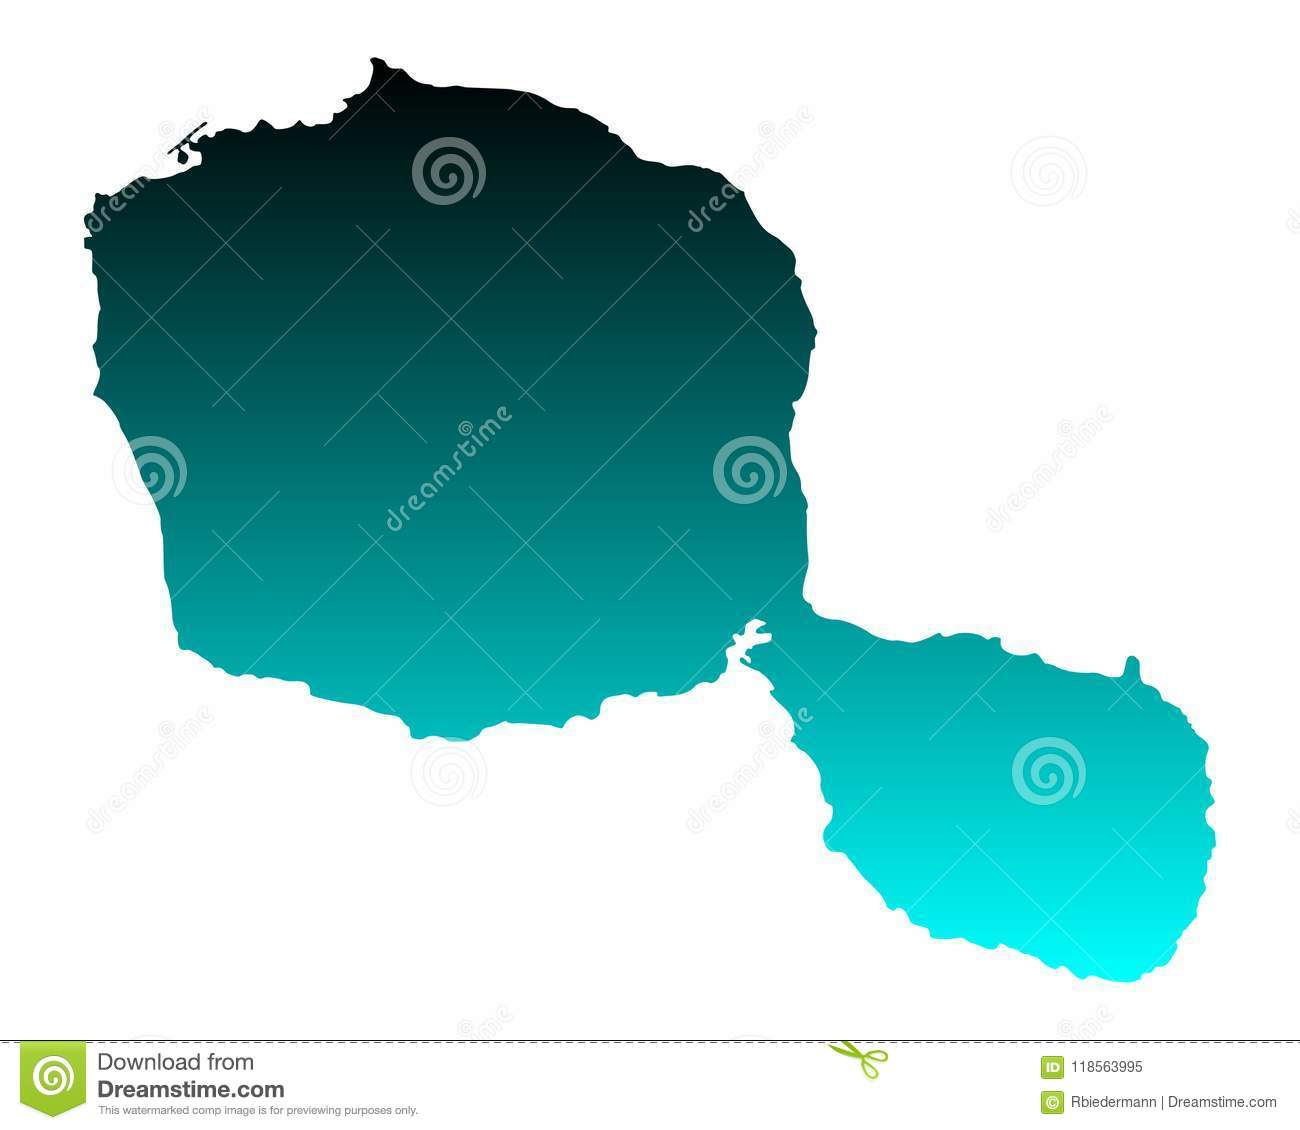 Map of Tahiti stock vector. Illustration of cartography ... Detailed Map Of Tahiti on detailed map of australia, detailed map of european rivers, detailed map of st croix, detailed map of greek isles, detailed map of new guinea, detailed map of central america, detailed map of canadian rockies, detailed map of south america, detailed map of france, detailed map of singapore, detailed map of mauritius, detailed map of virgin gorda, detailed map of cinque terre italy, detailed map of the hawaiian islands, detailed map of rarotonga, detailed map of caribbean, detailed map of riyadh, detailed map of big island of hawaii, detailed map of cayman islands, detailed map of new england,